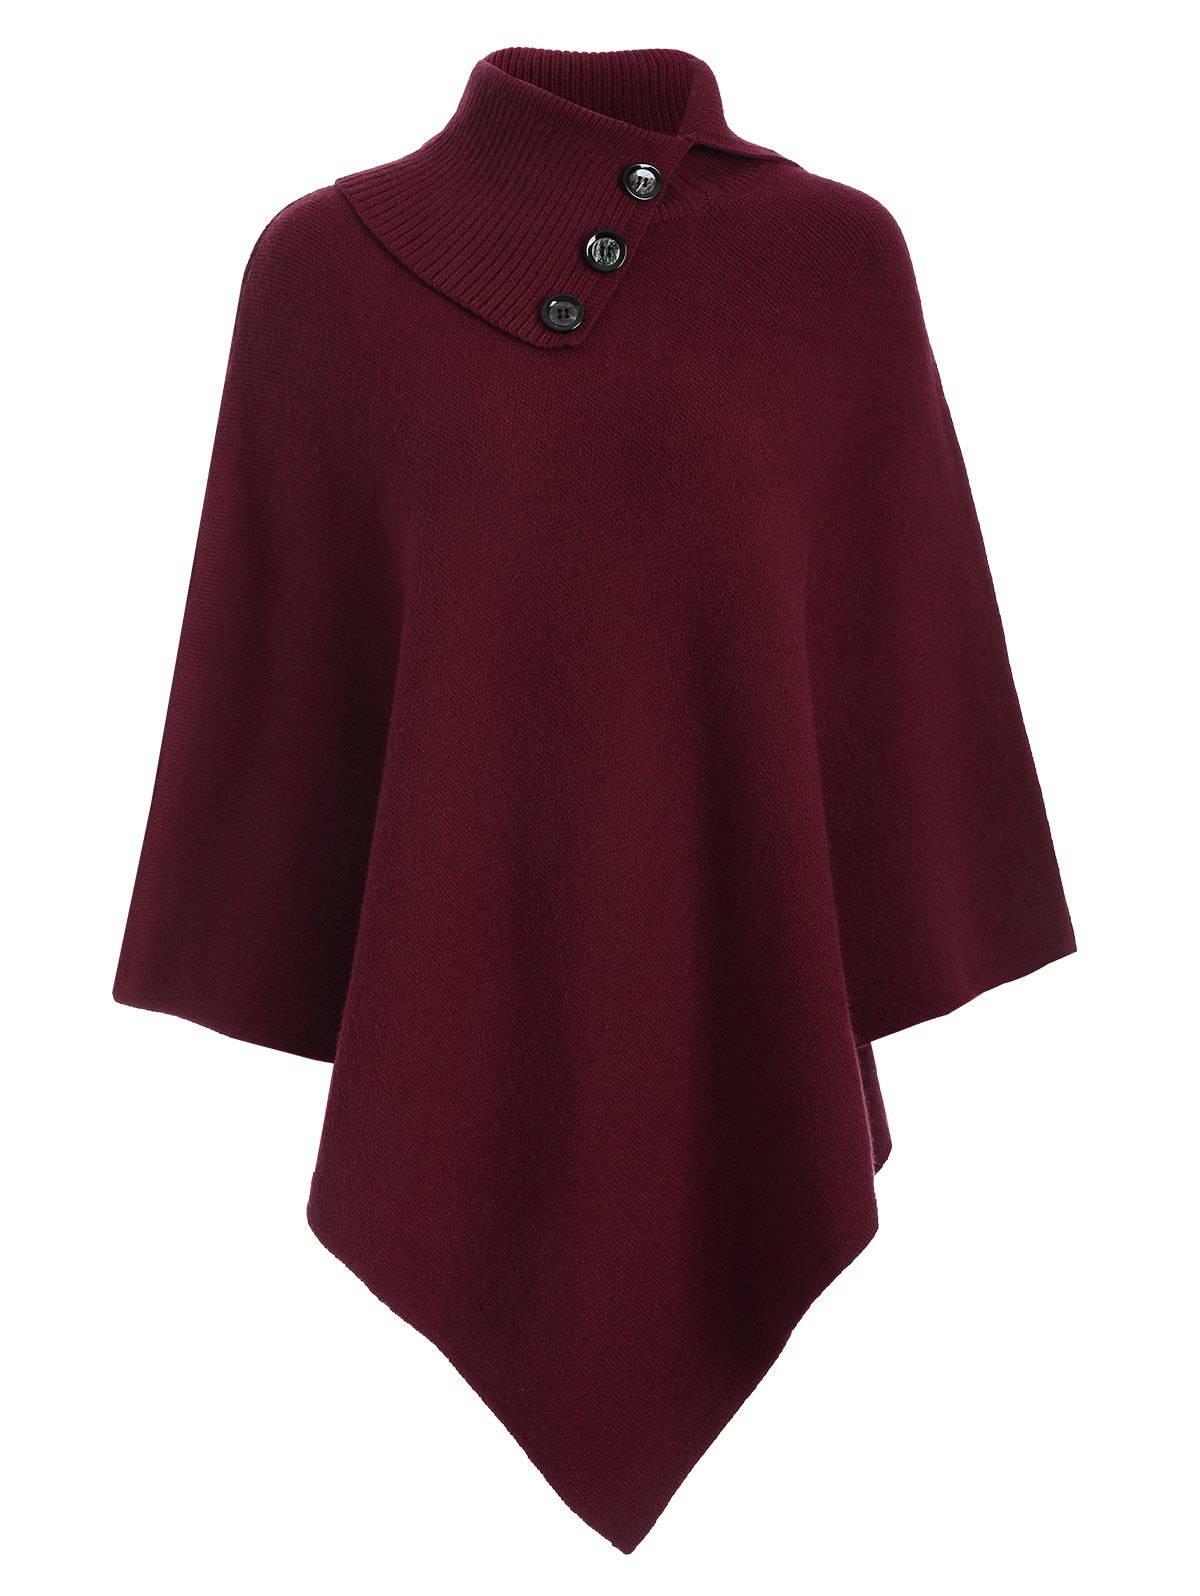 Knitted Convertible Neck Asymmetric Cape - WINE RED ONE SIZE